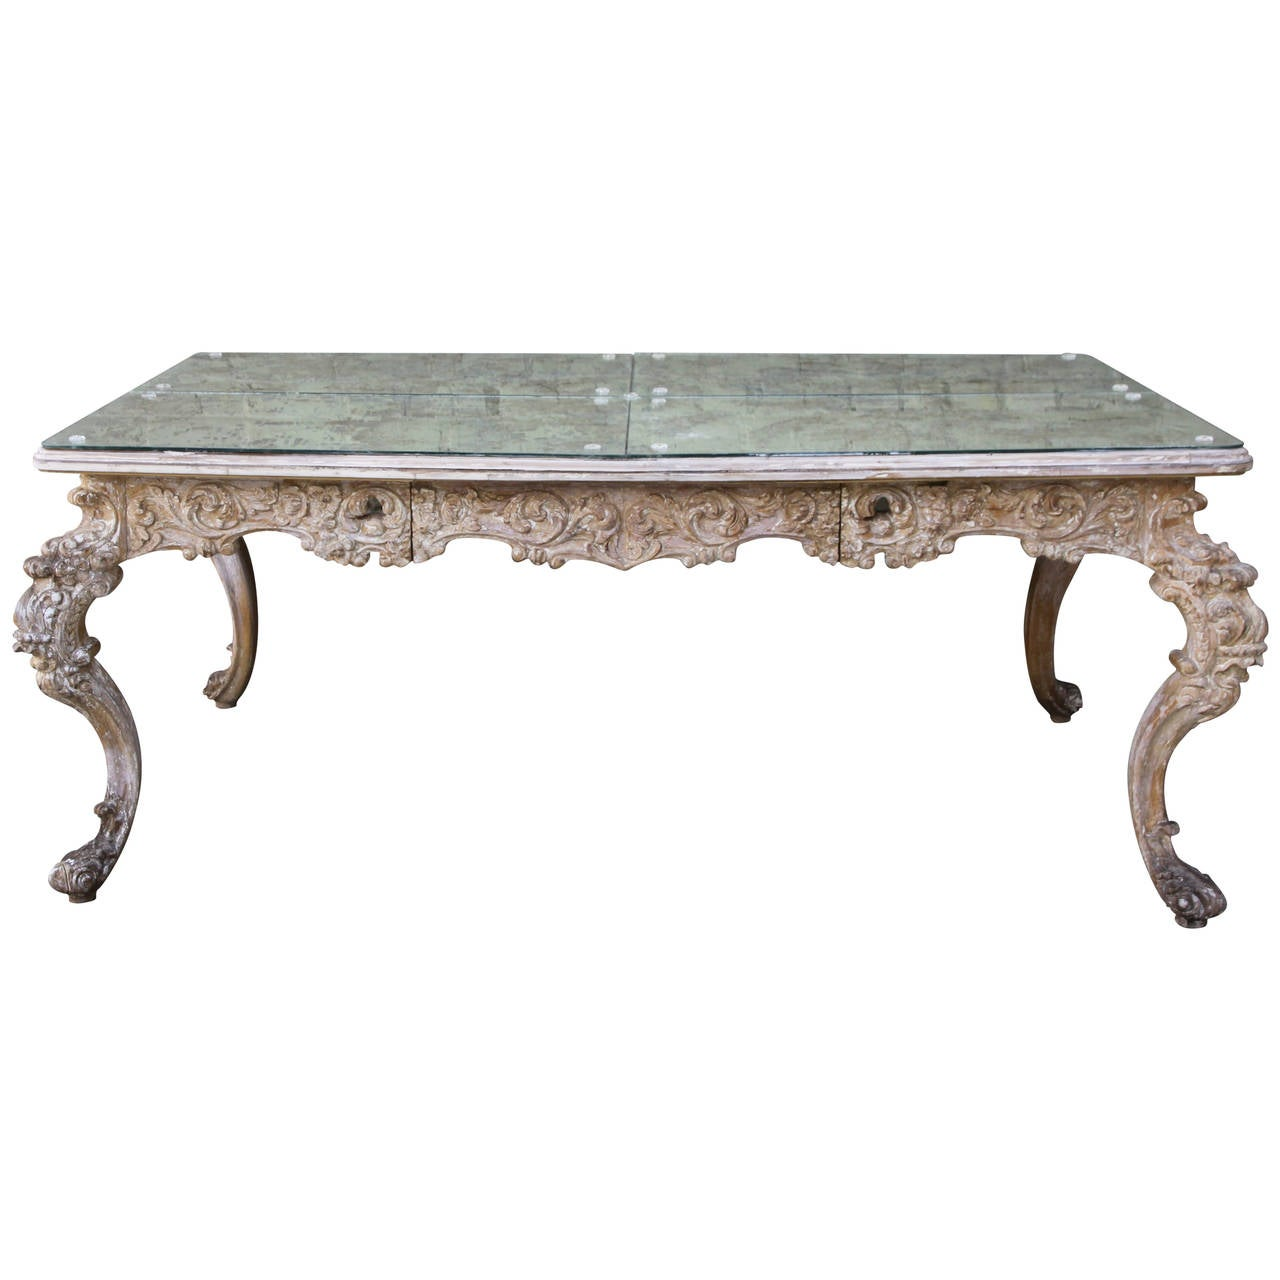 French Rococo Coffee Table: French Rococo Style Desk With Antiqued Mirrored Top At 1stdibs